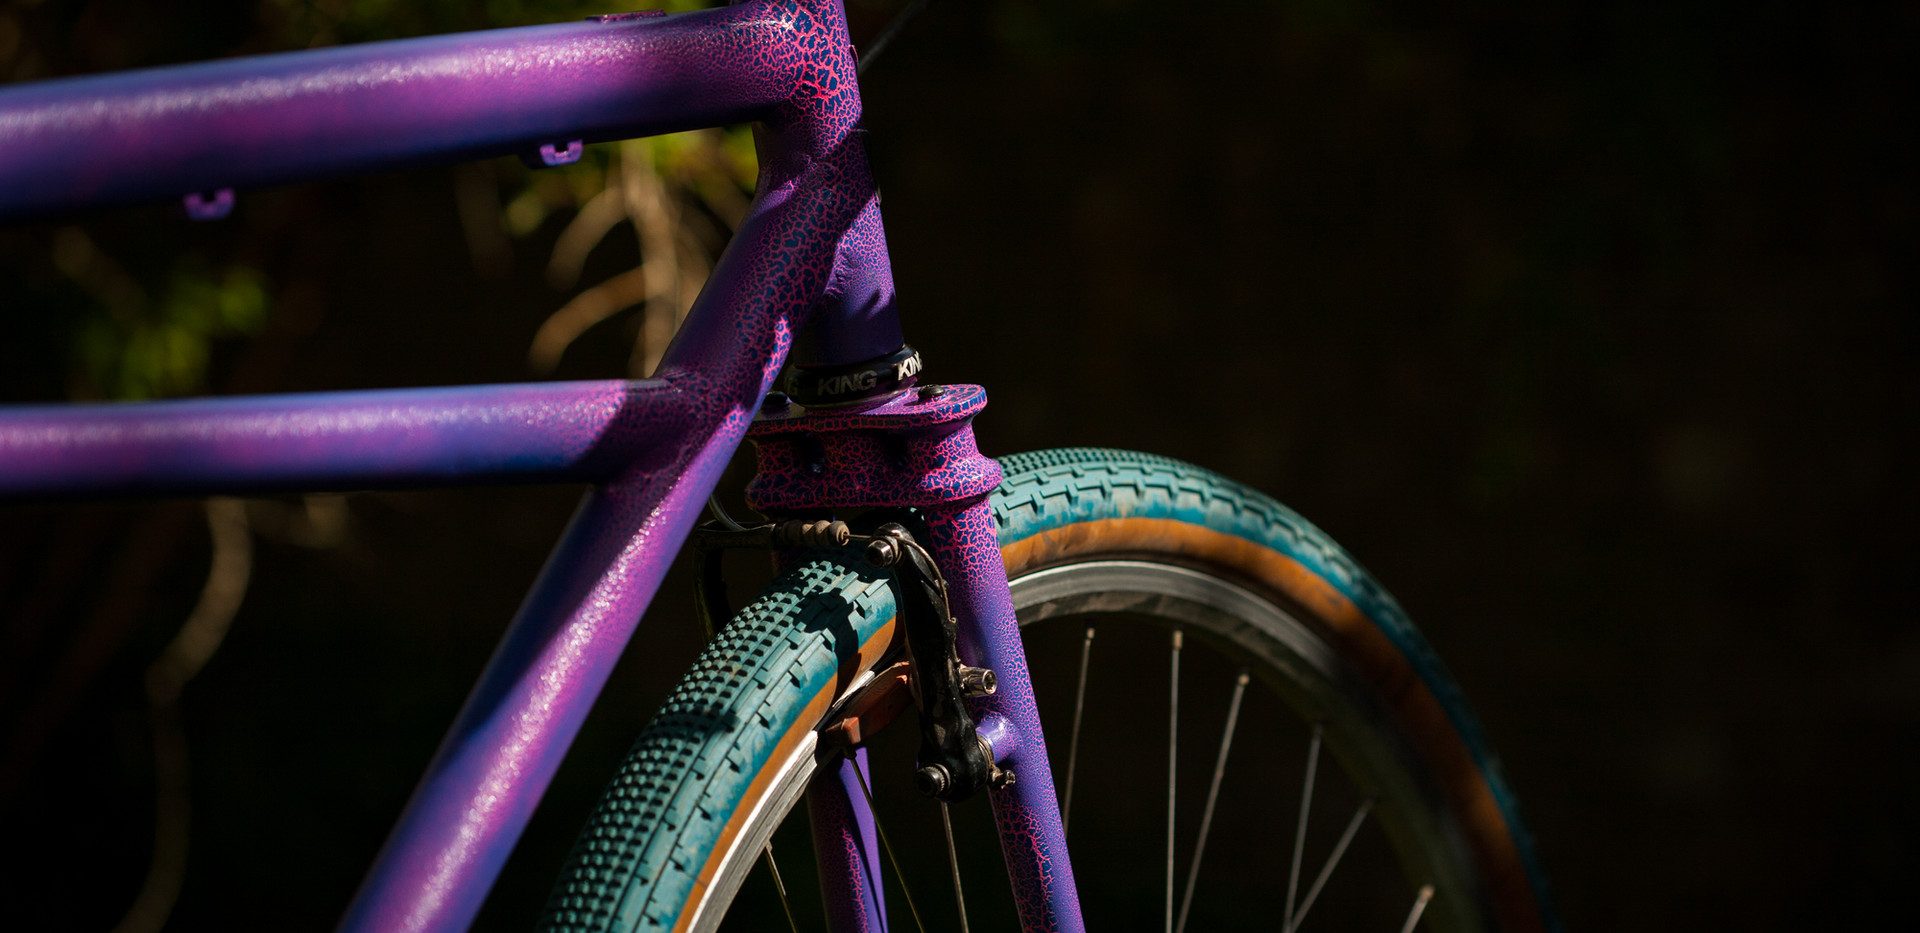 Klunker style gravel frameset with twin plate fork crown and crackle paint.